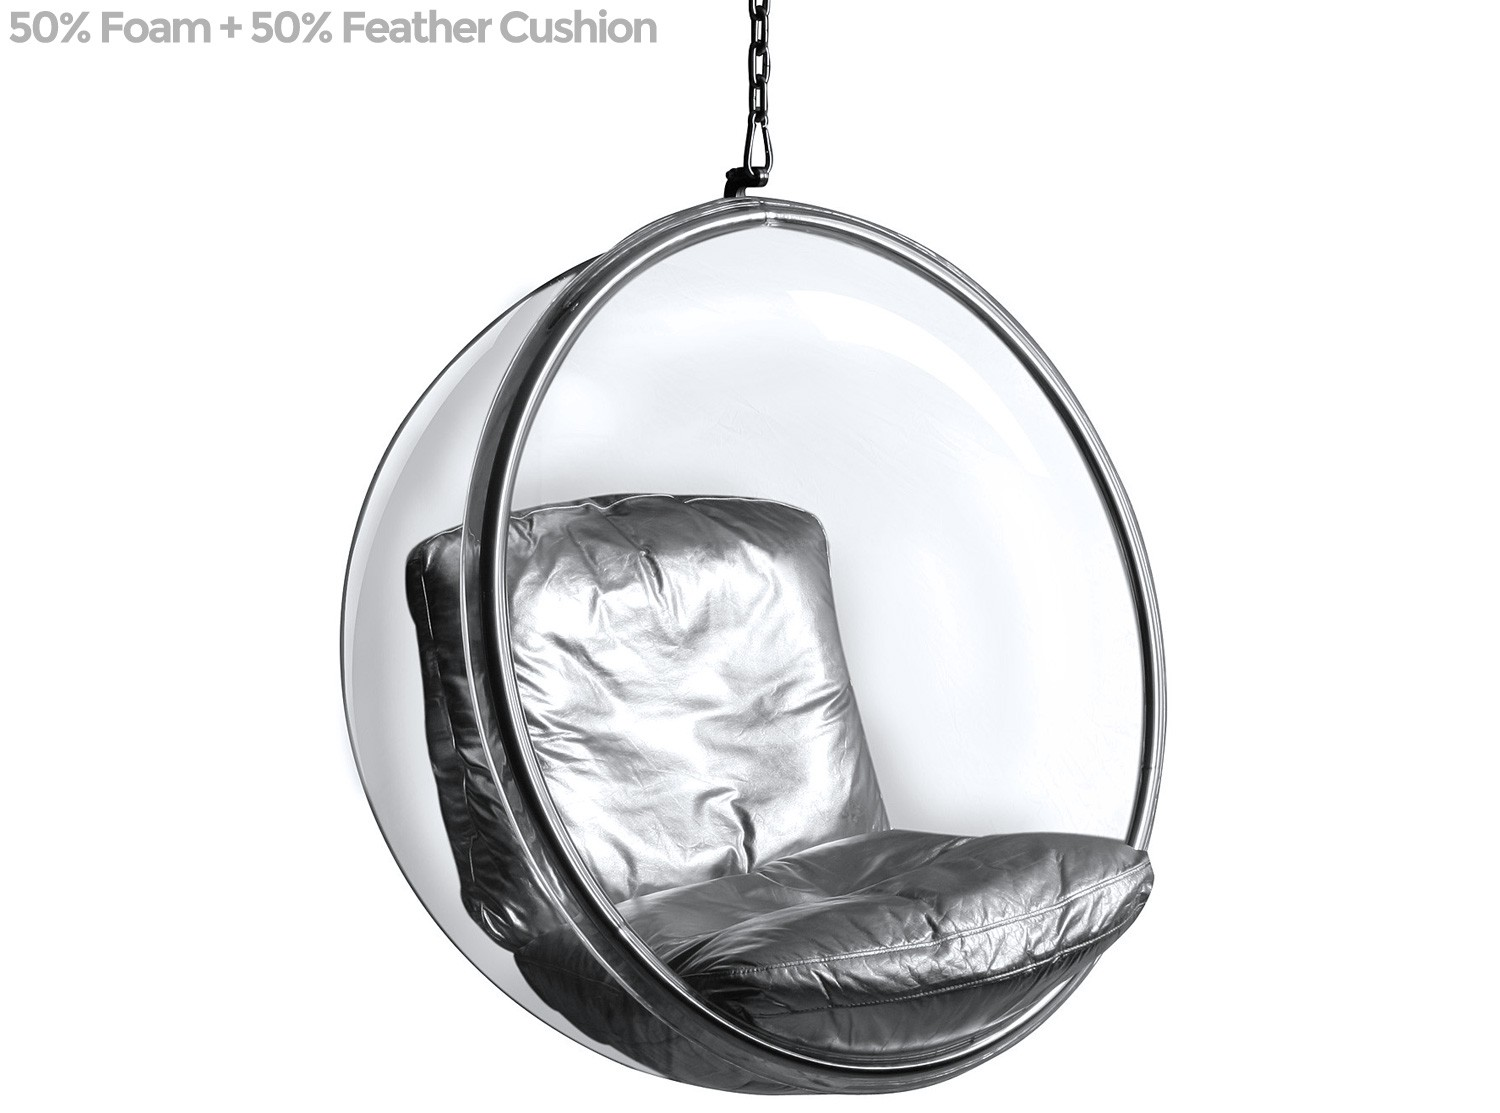 Bubble chair by eero aarnio platinum replica pictured with 50